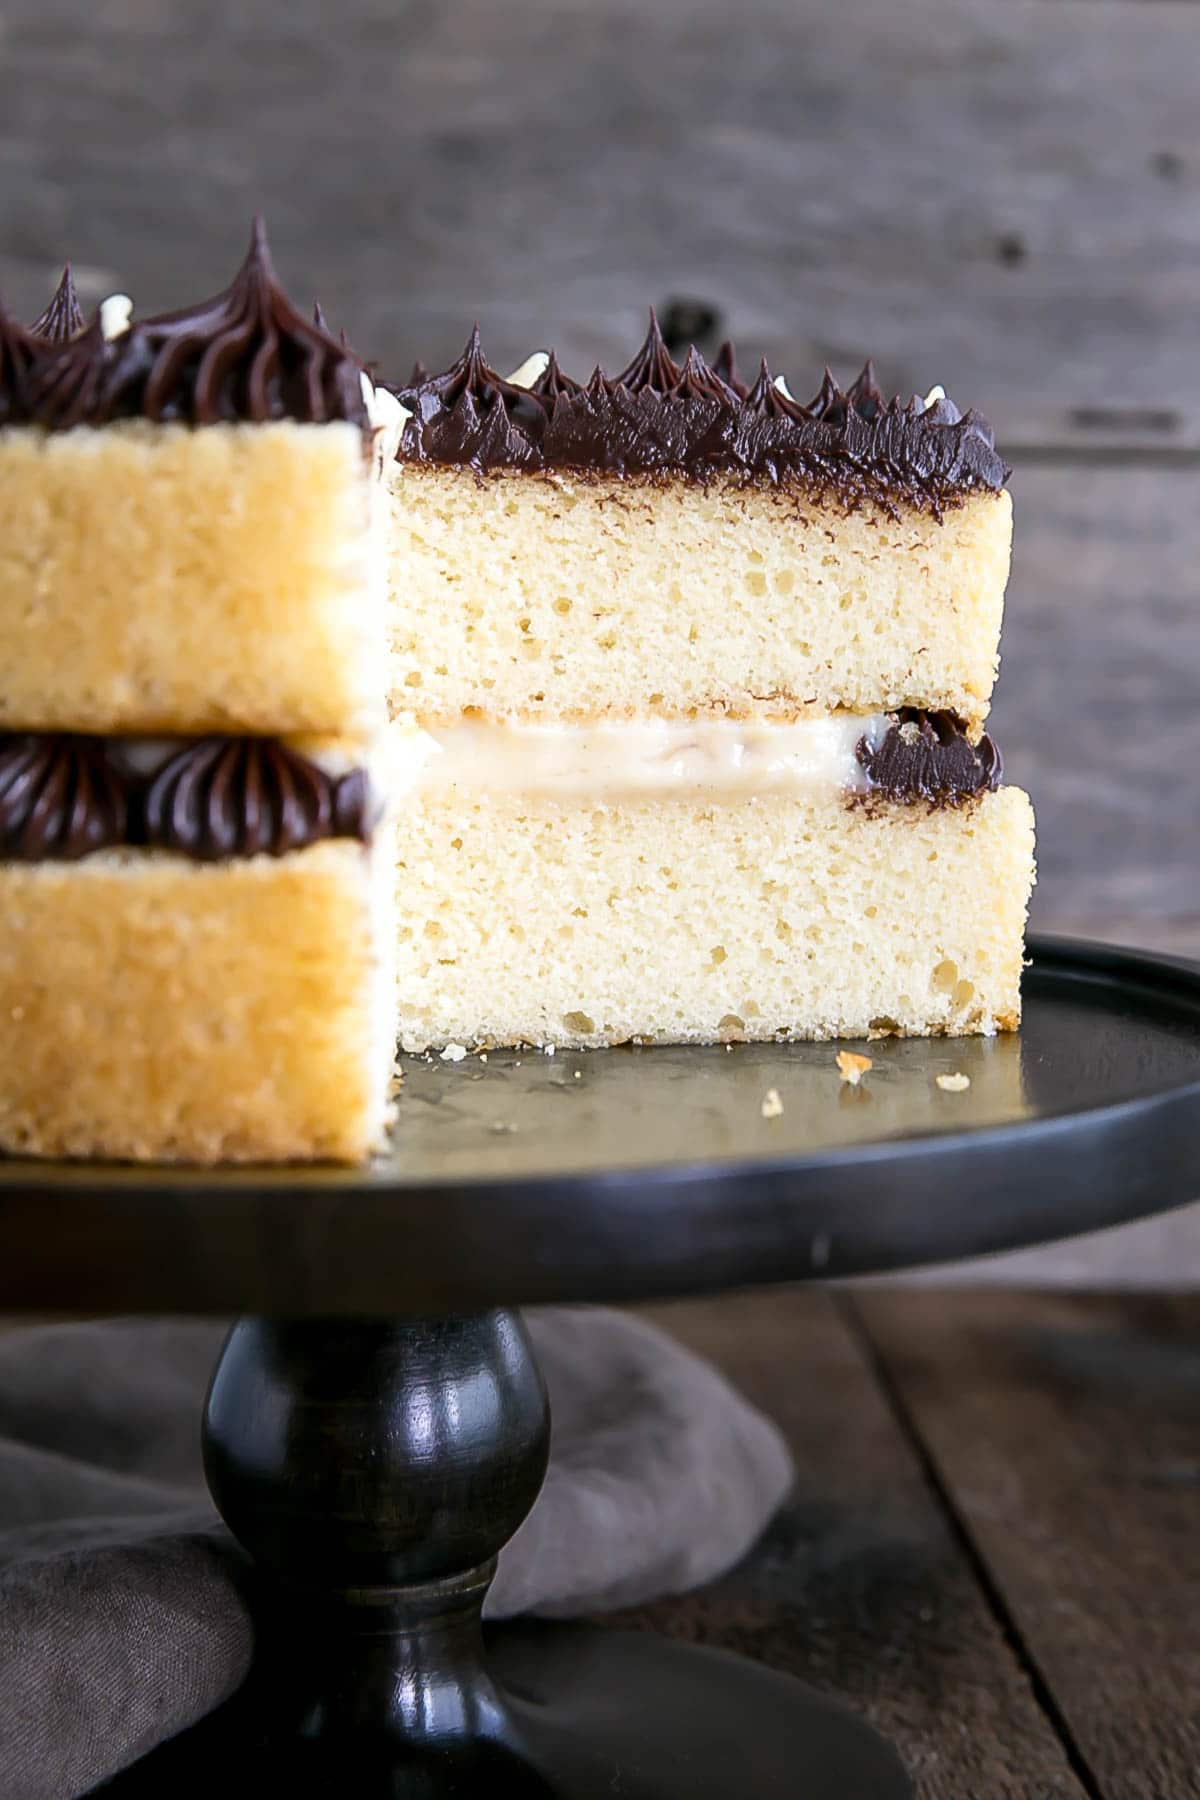 Boston Cream Pie with pastry cream and chocolate ganache